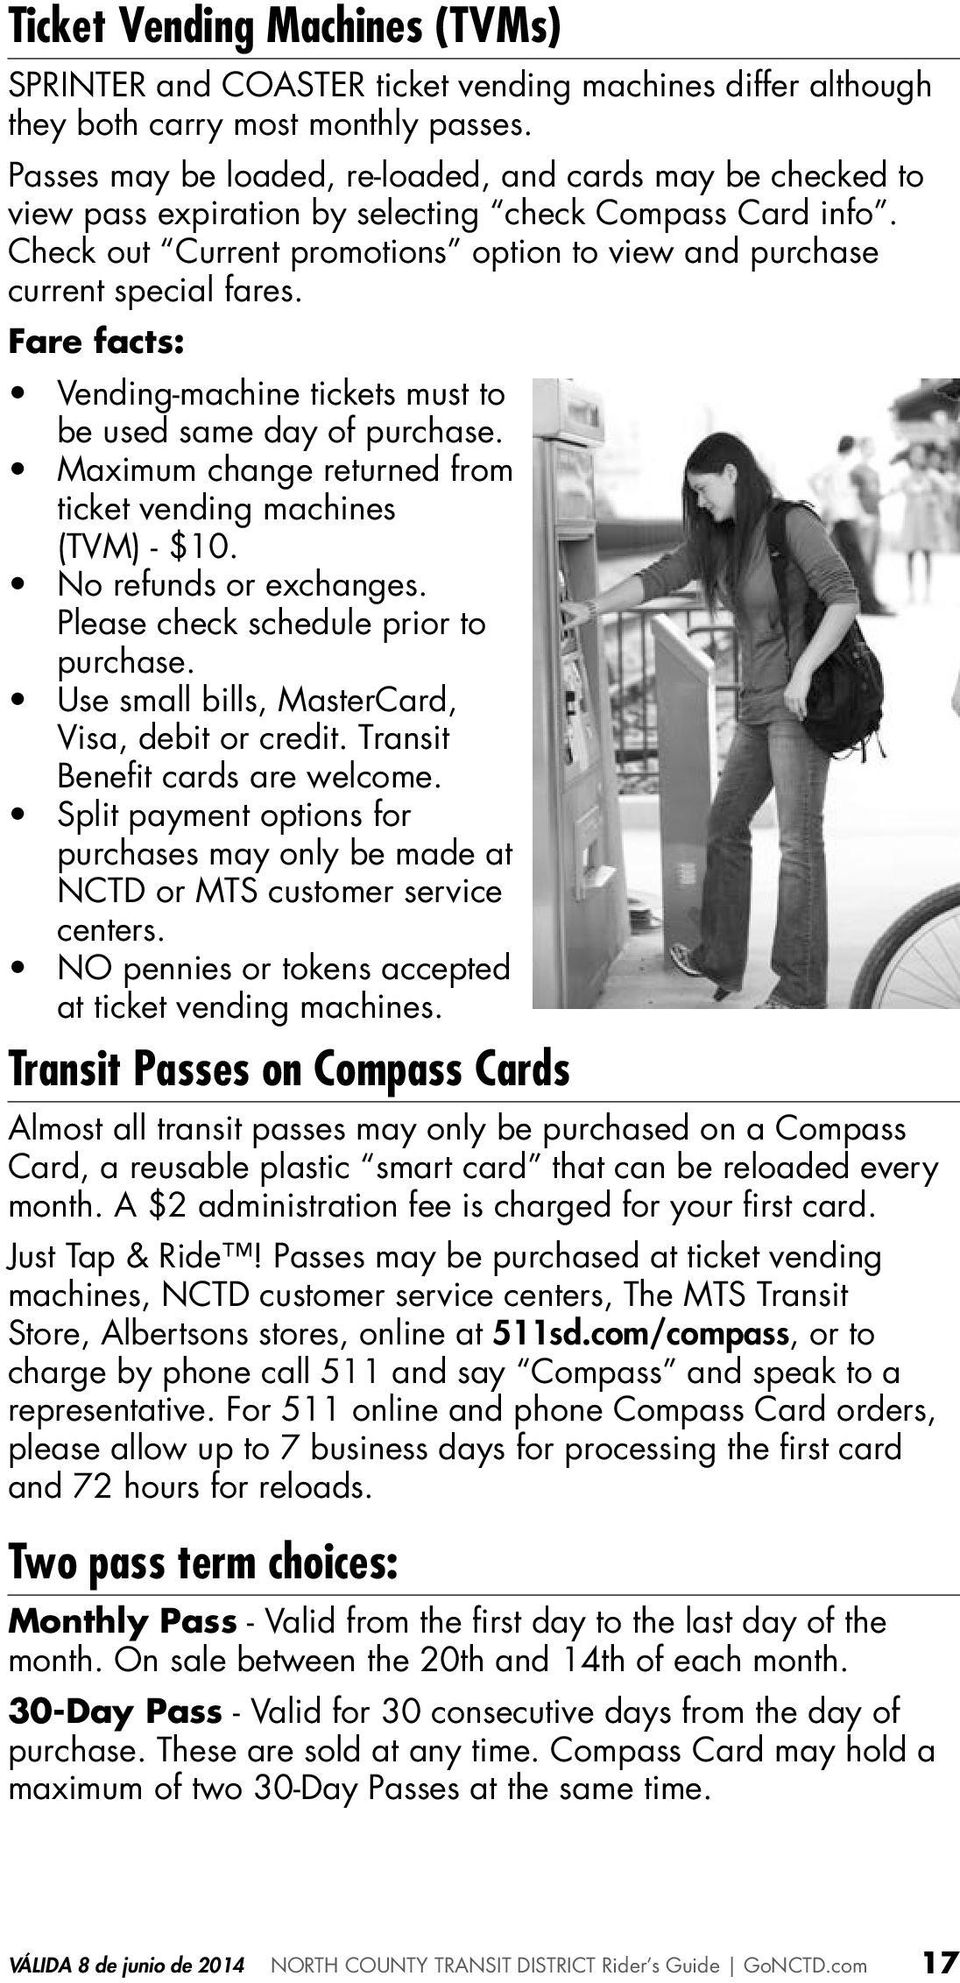 Fare facts: Vending-machine tickets must to be used same day of purchase. Maximum change returned from ticket vending machines (TVM) - $10. No refunds or exchanges.